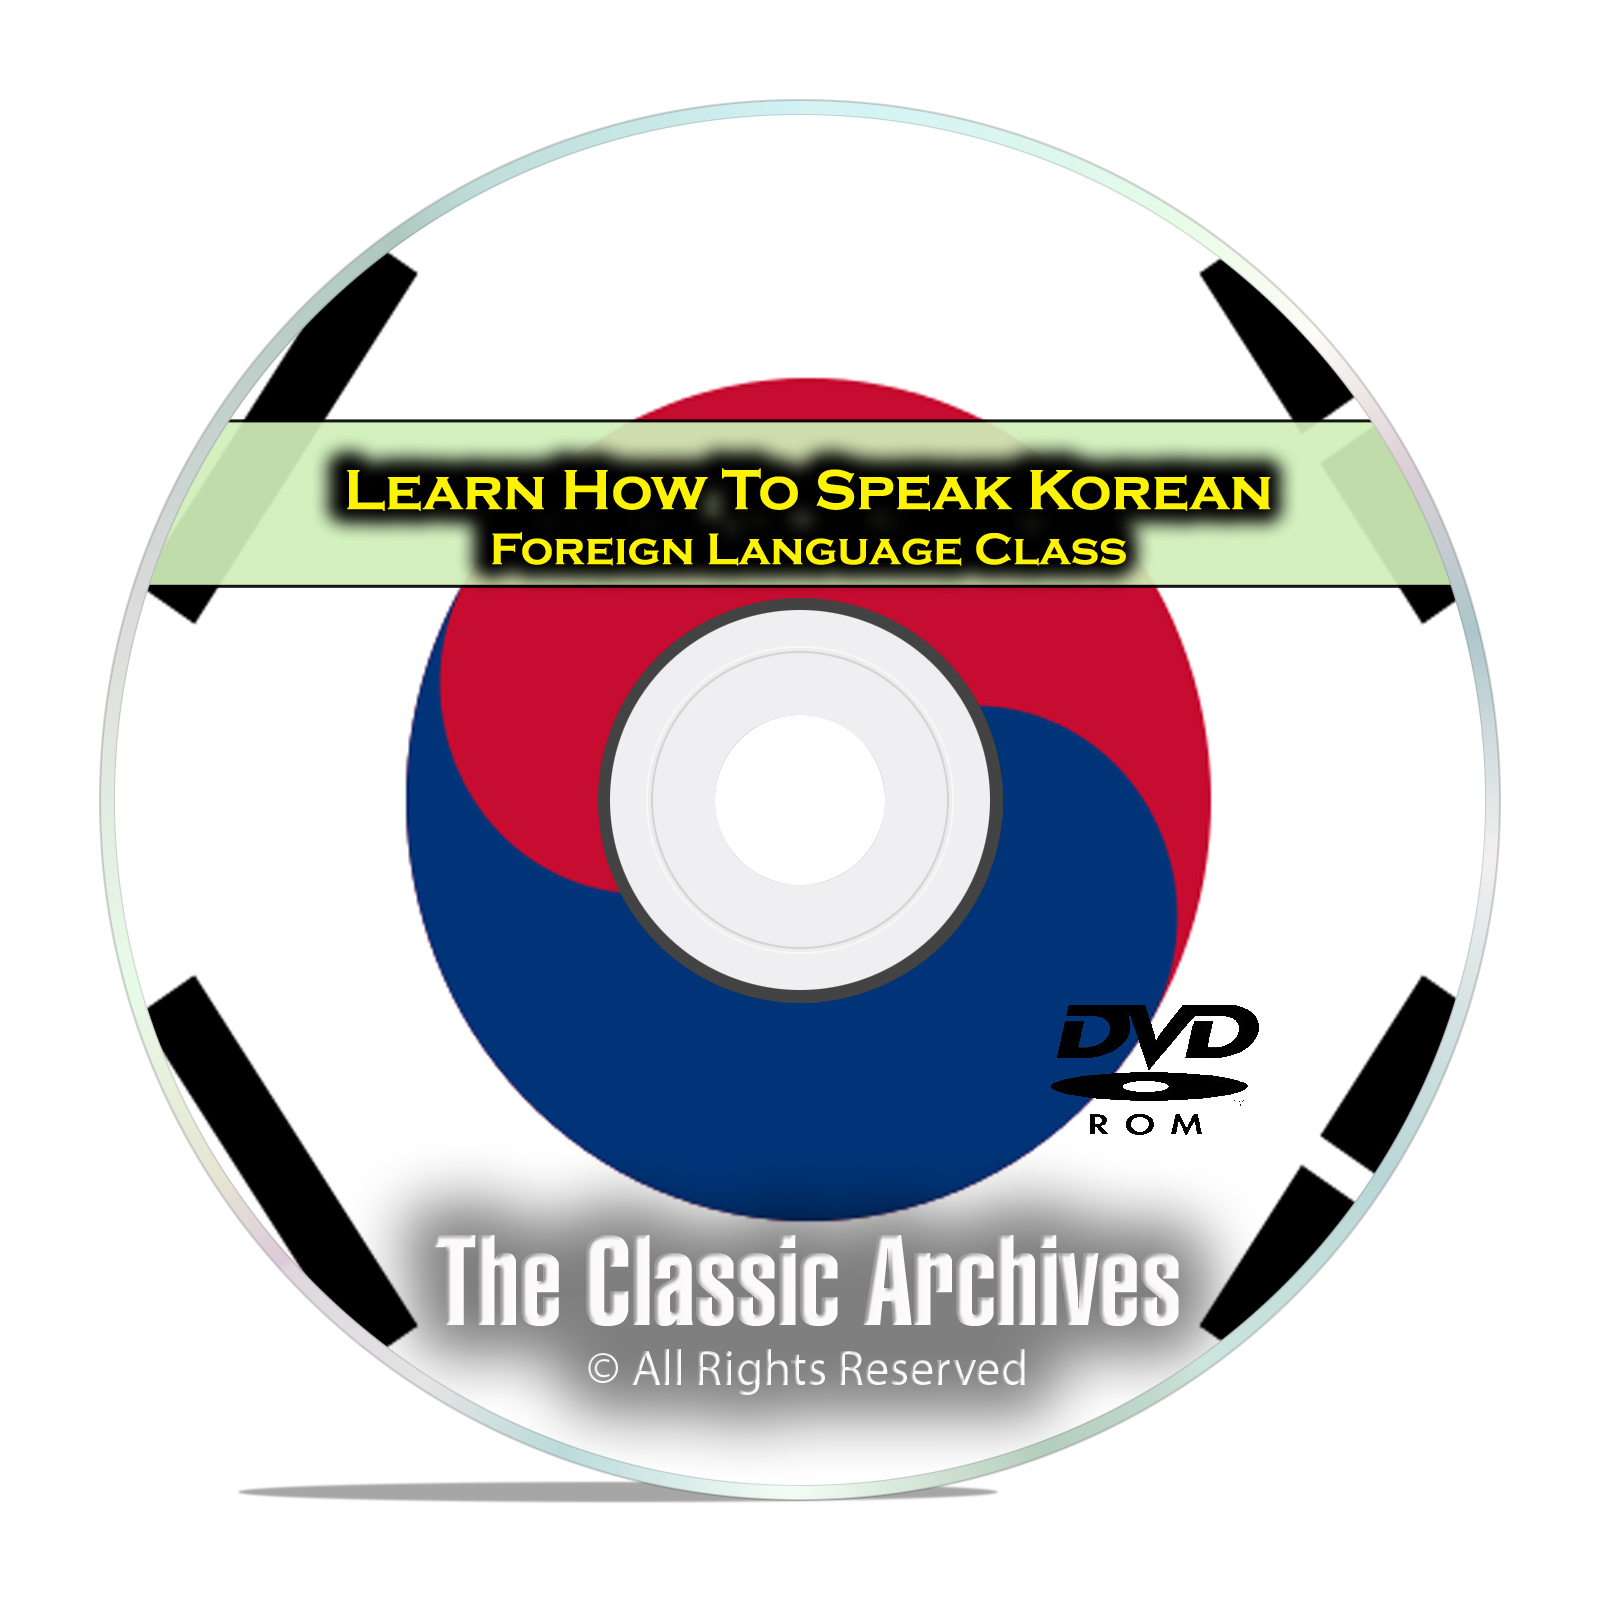 Learn How To Speak Korean, Fast & Easy Foreign Language Training Course DVD